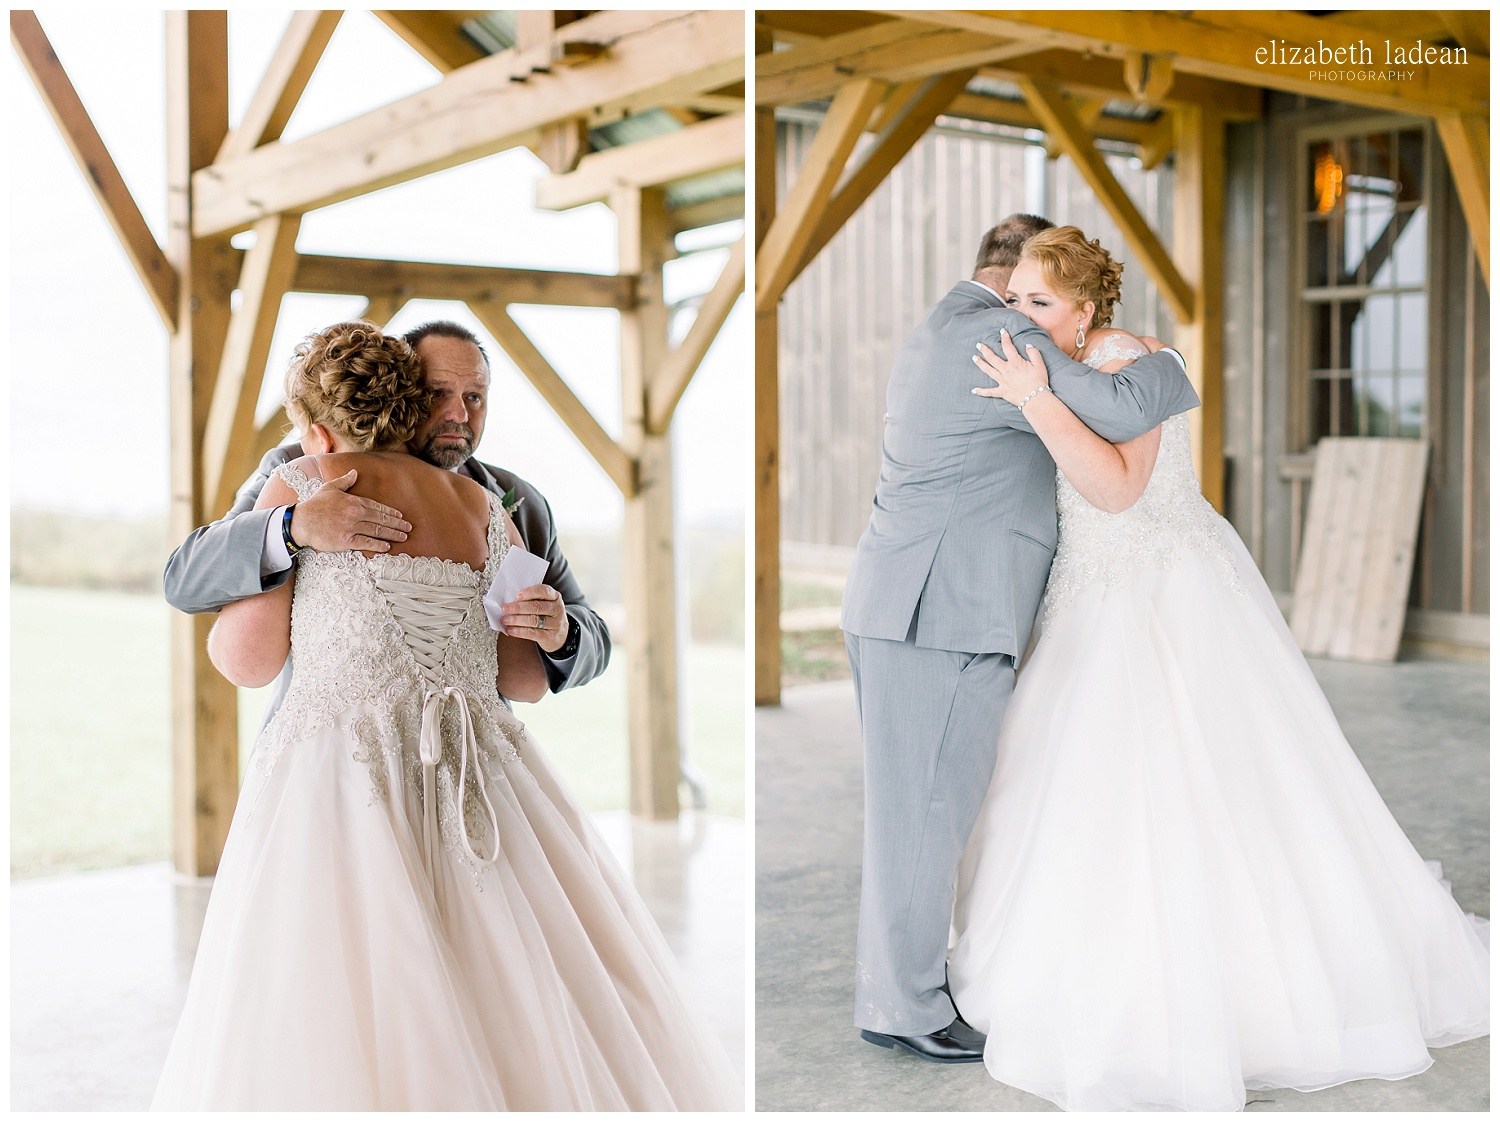 Weston-Timber-Barn-Wedding-Photography-L+A-elizabeth-ladean0photo_1853.jpg